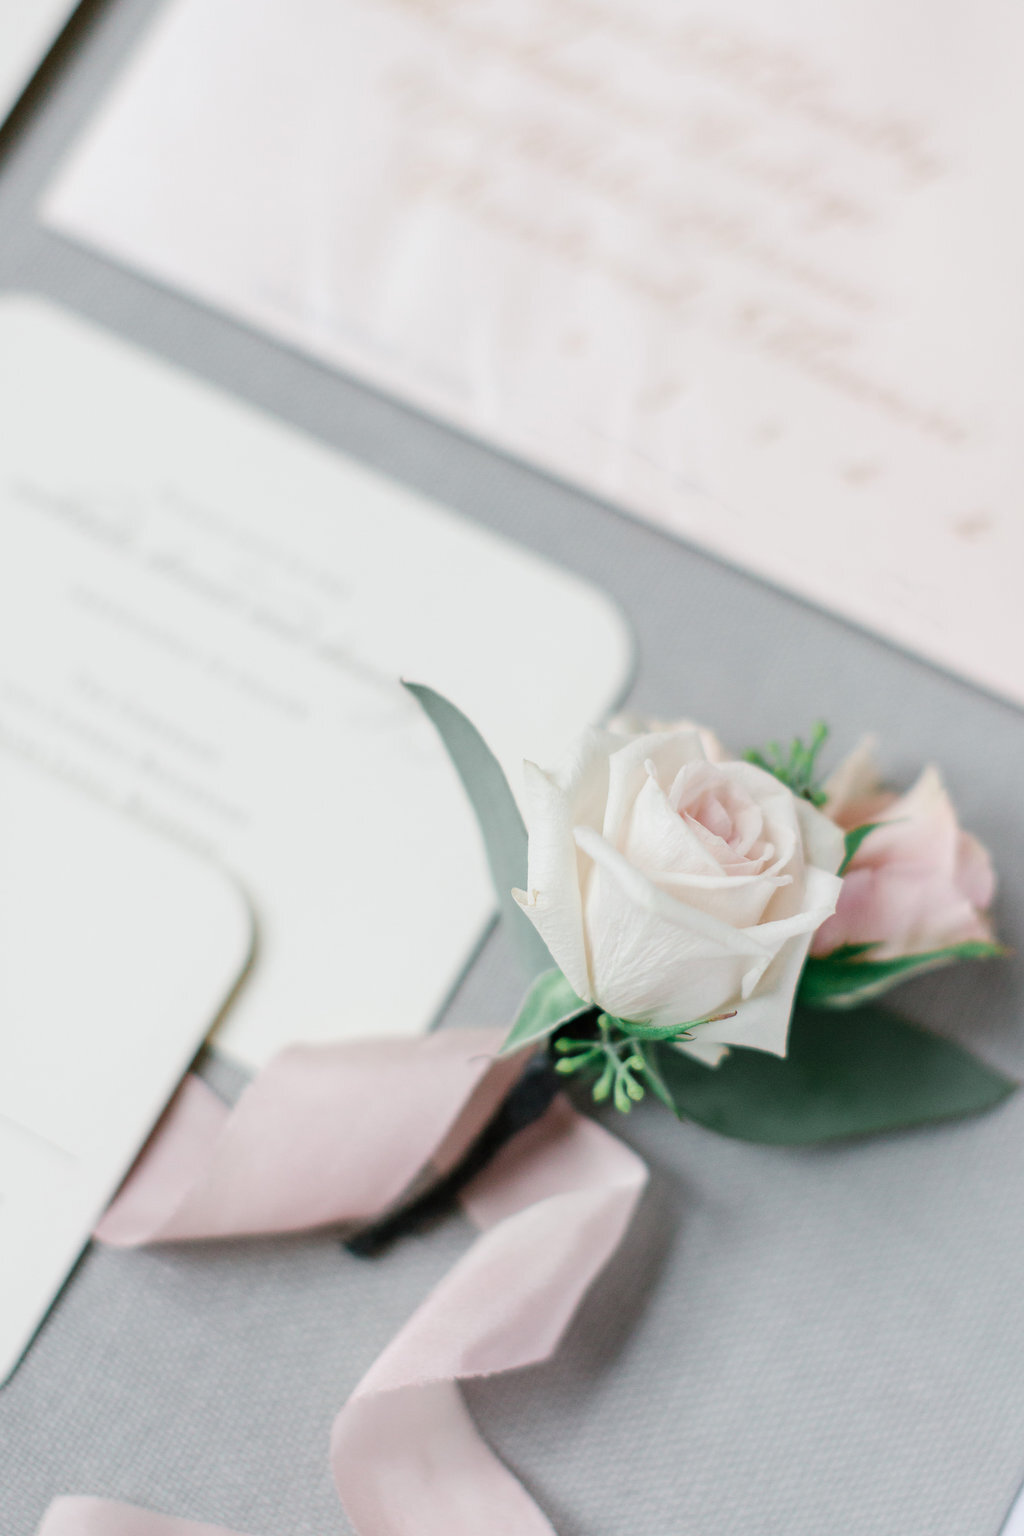 Gorgeous wedding stationery with gold raised ink on ivory corner rounded stock, complemented with a blush soft shimmer envelope. Matching response card. Beautiful calligraphy in gold by paint jar productions. Stationery by Poeme.